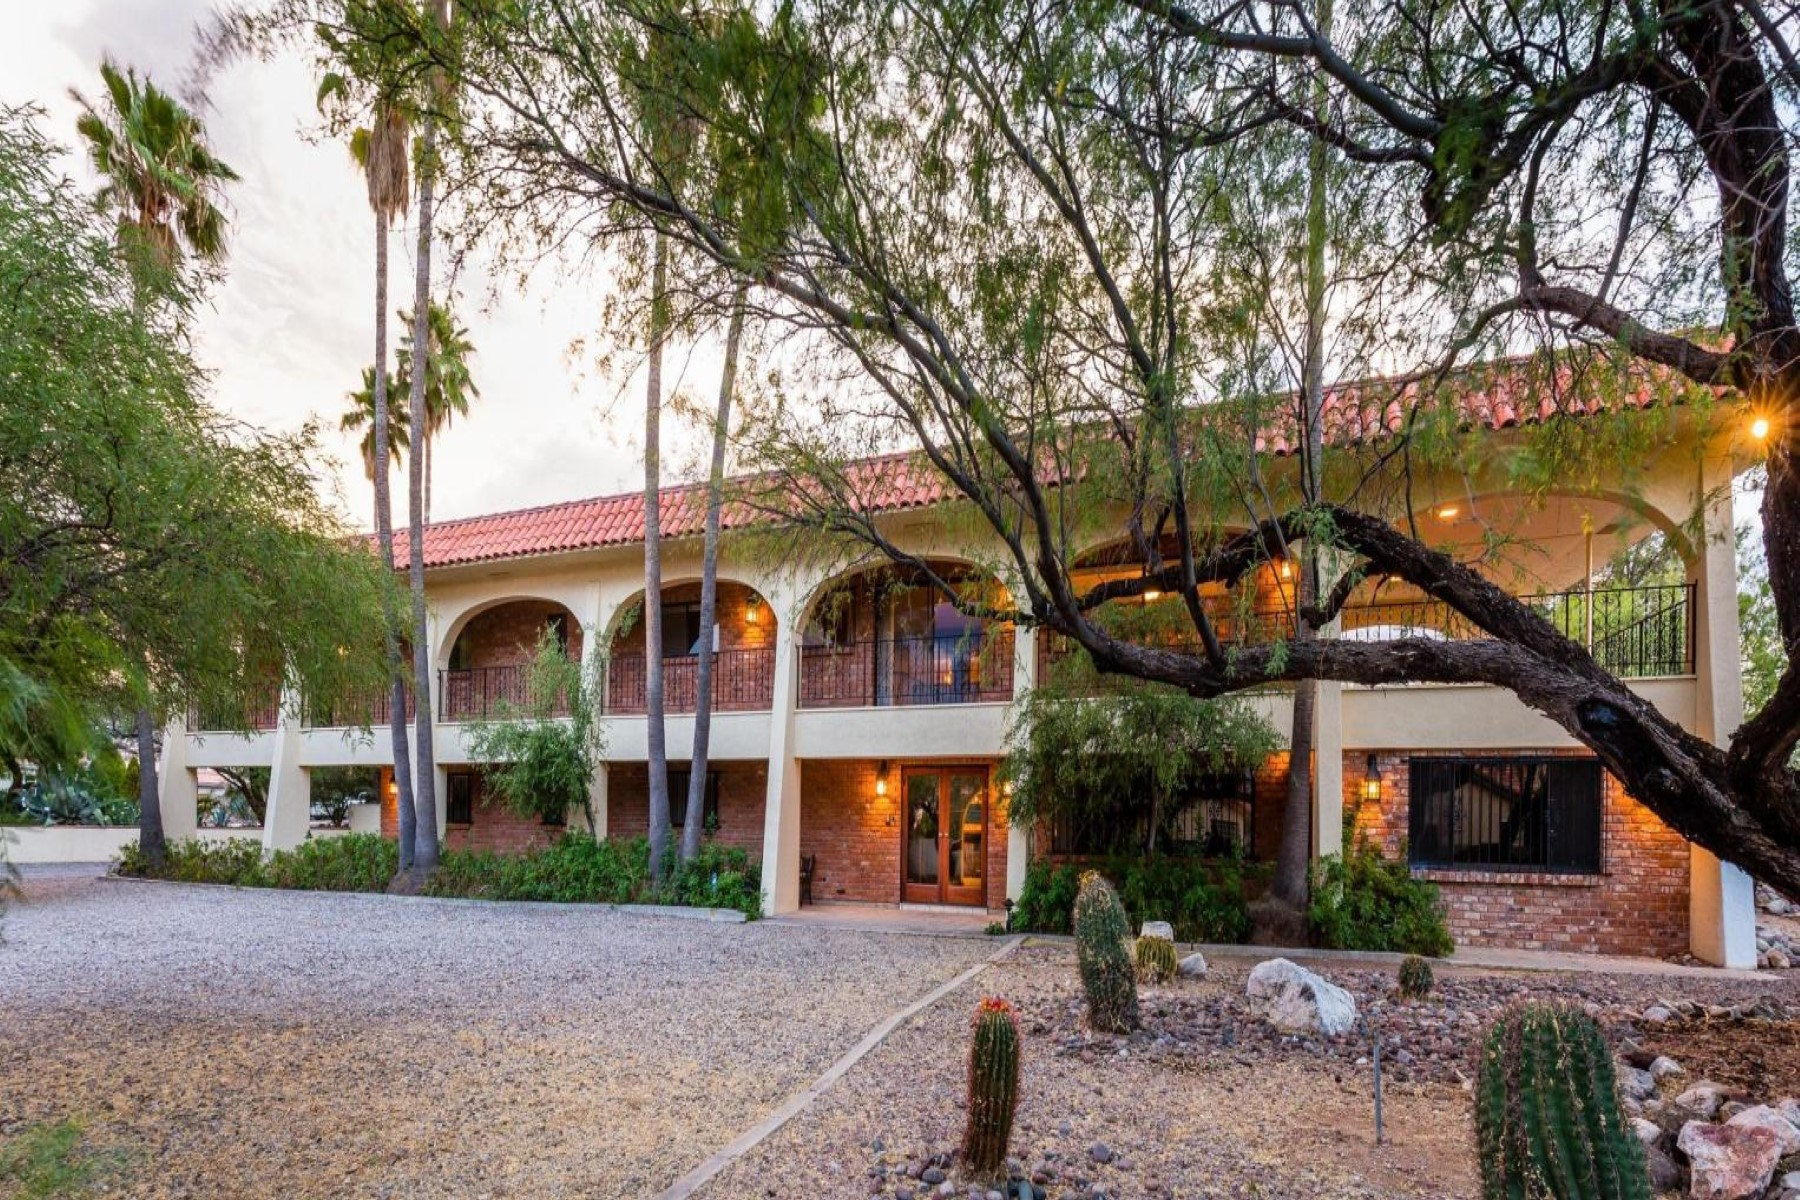 Einfamilienhaus für Verkauf beim Private gated compound on nearly 3 acres providing a secluded feel 260 S Sewell Place Tucson, Arizona, 85748 Vereinigte Staaten